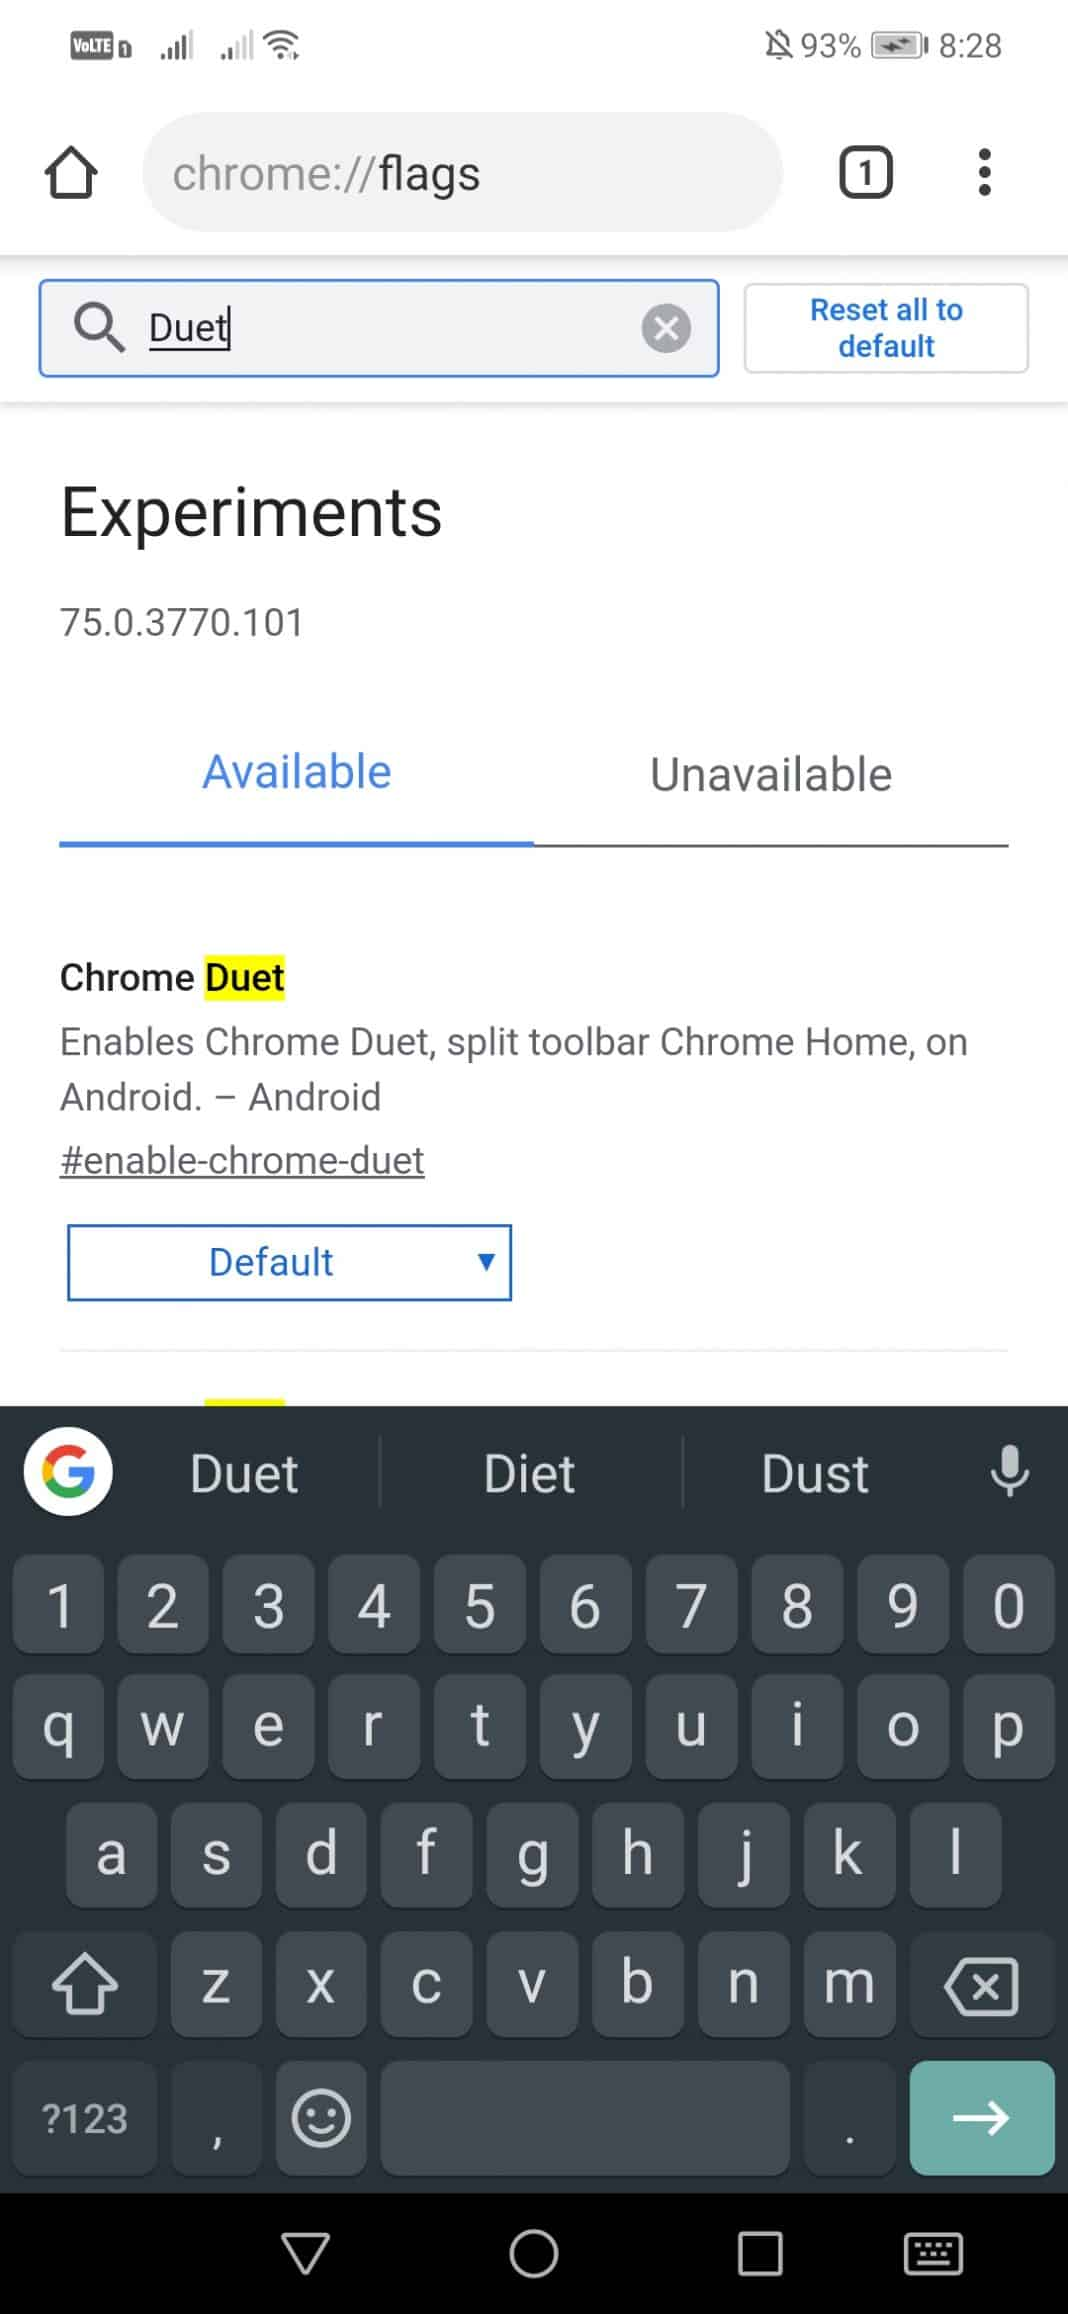 "انقل شريط عنوان Chrome إلى أسفل شاشتك ""width ="" 277 ""height ="" 600 ""srcset ="" https://techviral.net/wp-content/uploads/2019/08/Chrome-address-bar-4. jpg 1068w ، https://techviral.net/wp-content/uploads/2019/08/Chrome-address-bar-4-138x300.jpg 138w ، https://techviral.net/wp-content/uploads/2019/ 08 / Chrome-address-bar-4-768x1664.jpg 768w ، https://techviral.net/wp-content/uploads/2019/08/Chrome-address-bar-4-473x1024.jpg 473w ، https: // techviral.net/wp-content/uploads/2019/08/Chrome-address-bar-4-696x1508.jpg 696w ، https://techviral.net/wp-content/uploads/2019/08/Chrome-address-bar -4-194x420.jpg 194w ""data-lazy-sizes ="" (الحد الأقصى للعرض: 277 بكسل) 100 فولت ، 277 بكسل"